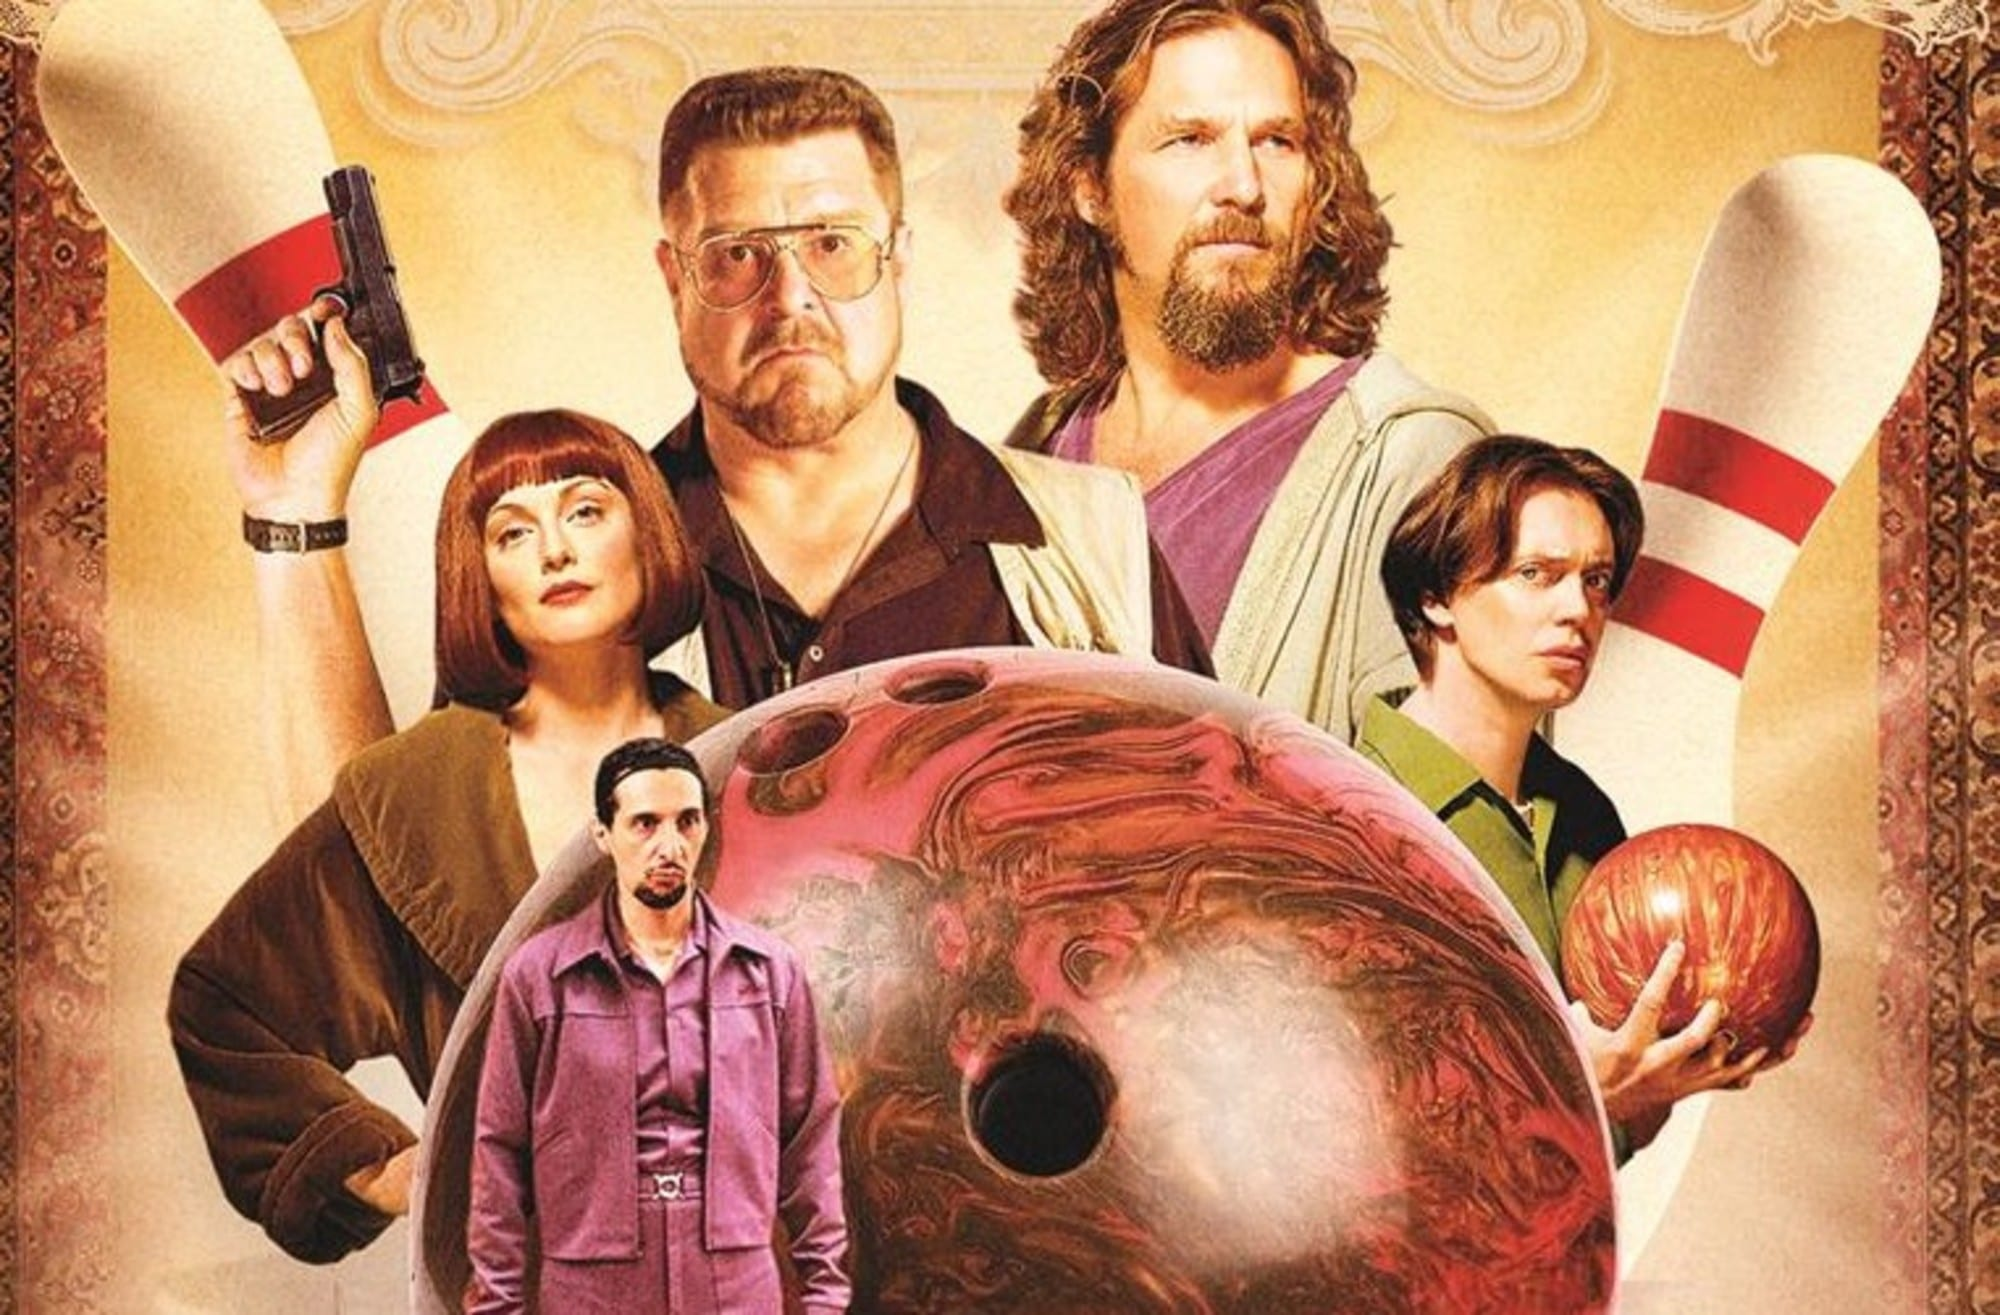 Cigar and a Movie: The Big Lebowski